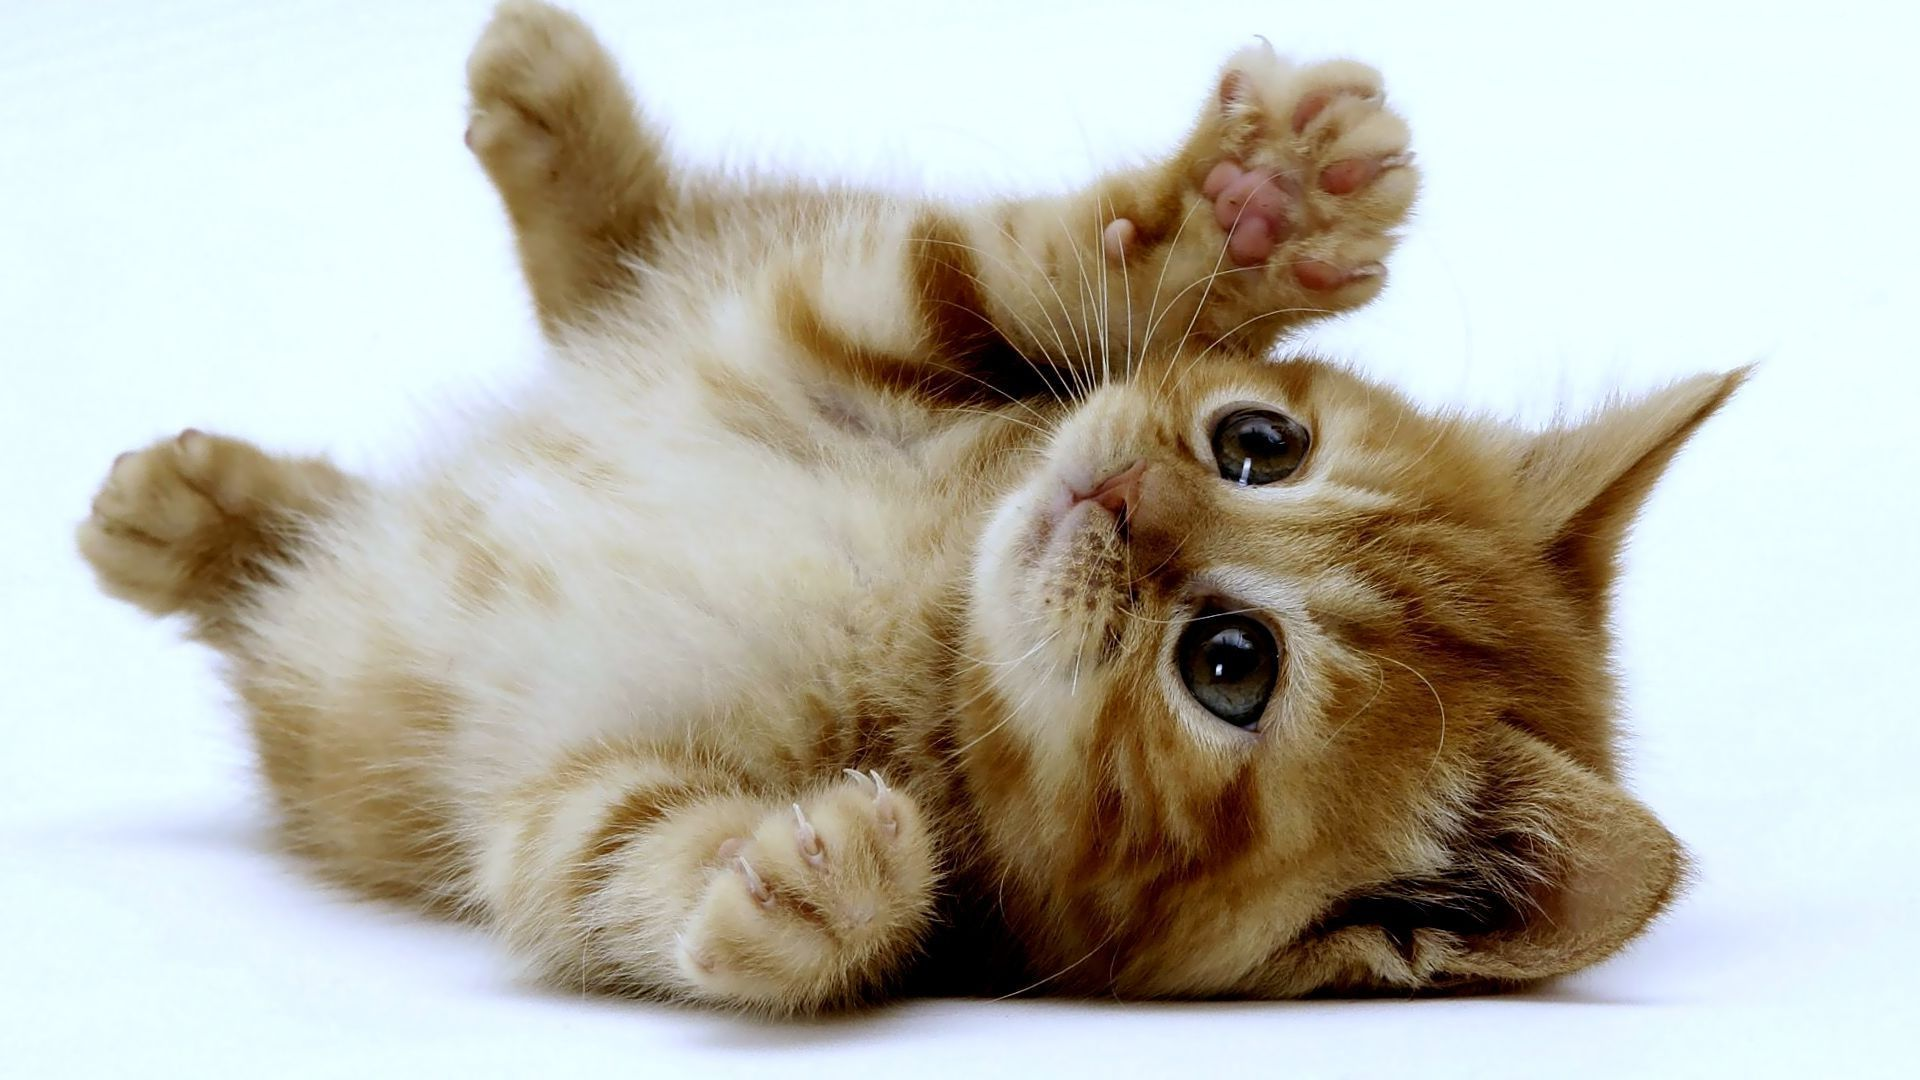 Very Cute Kittens Wallpaper 9699 Full HD Wallpaper Desktop - Res .